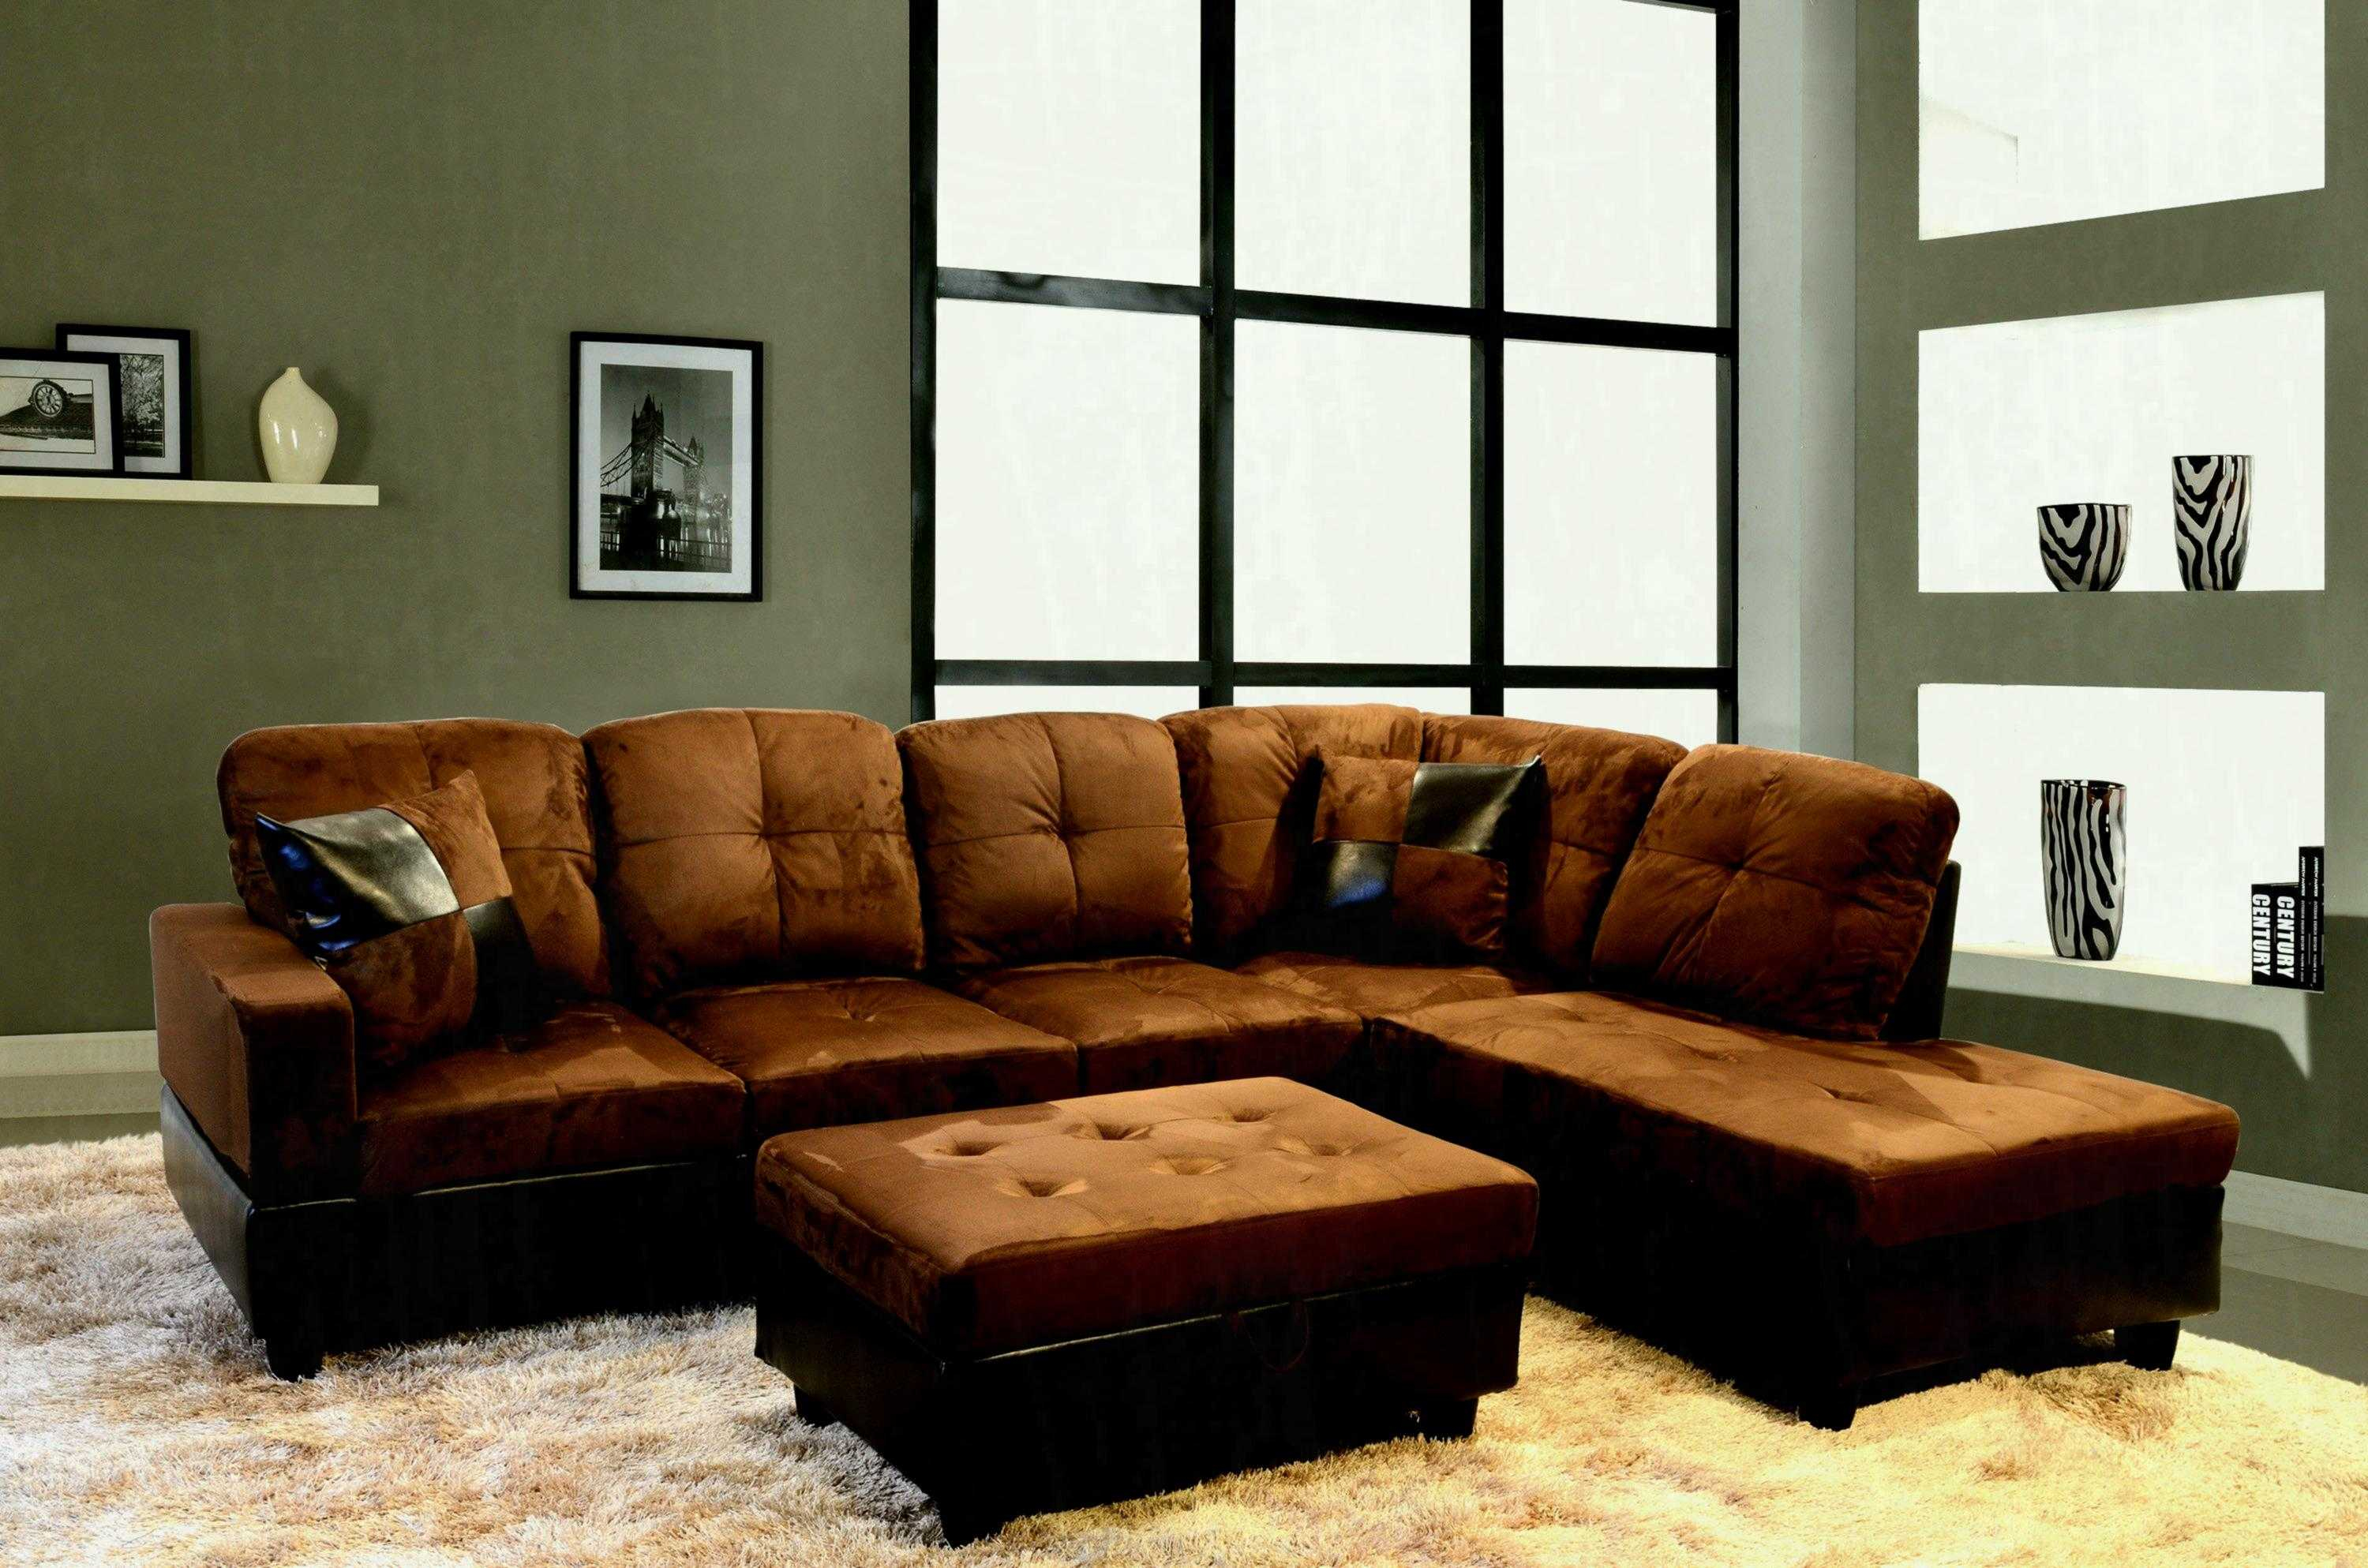 Stunning Home Decorating And Luxury Sleeper Sofa Futon Collection with regard to 14 Smart Ways How to Craft Sears Living Room Sets